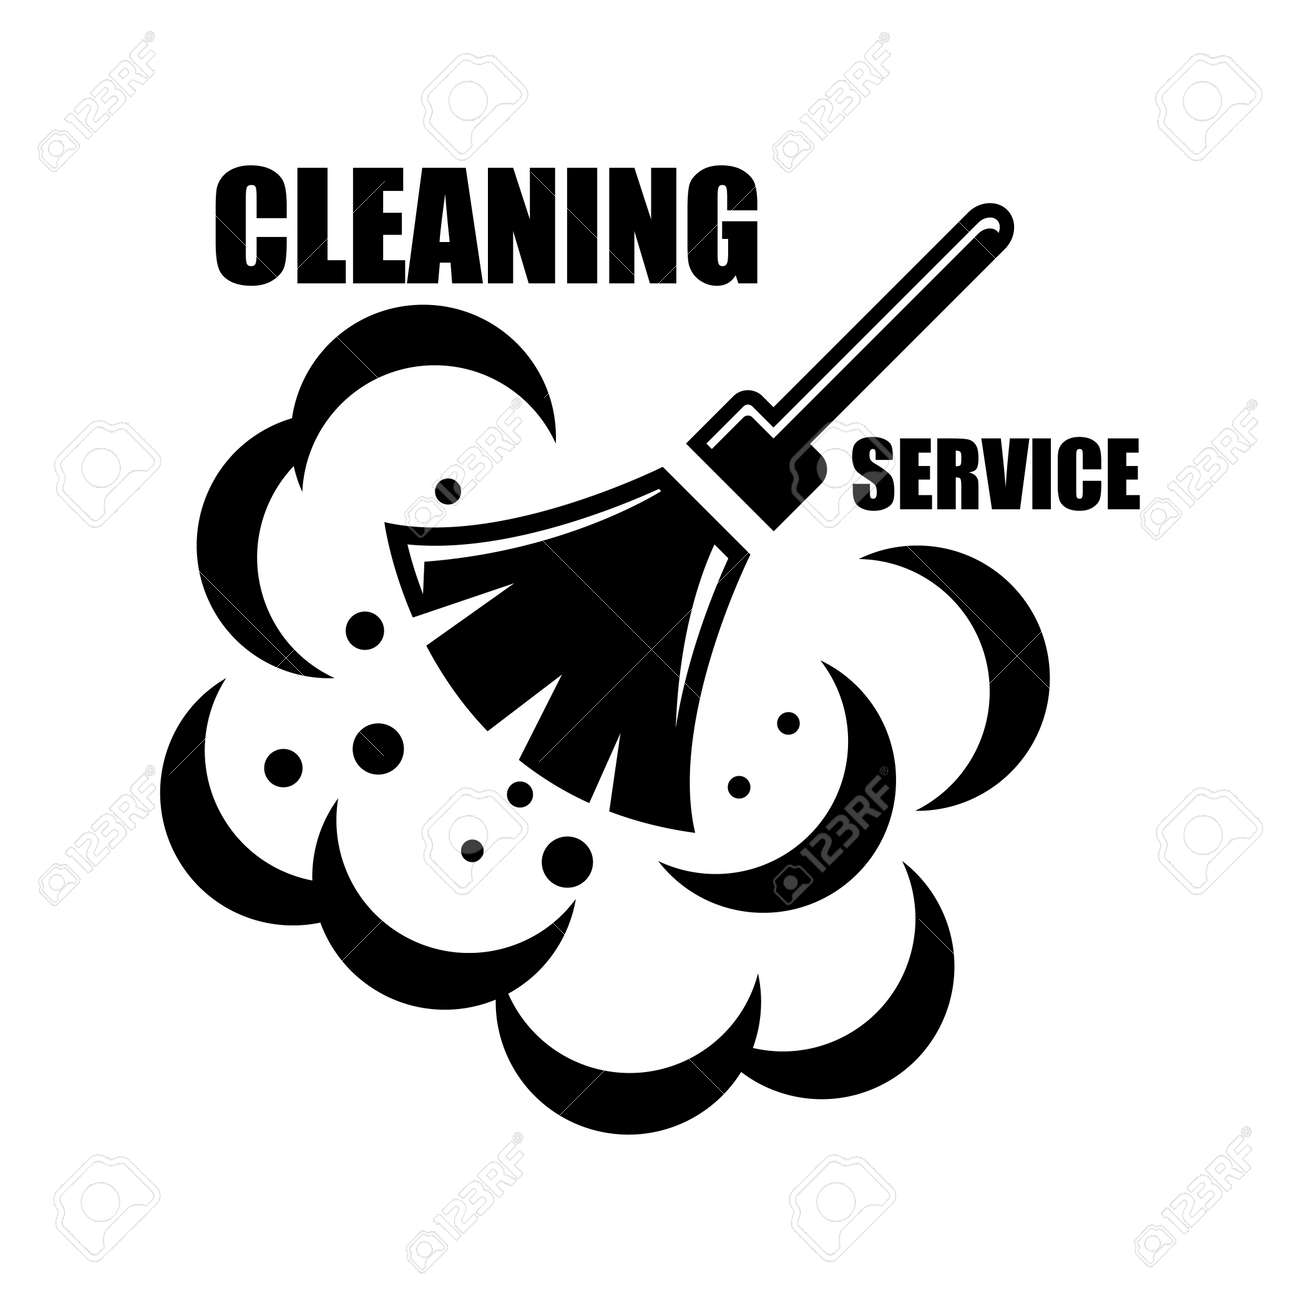 6 426 cleaning service stock illustrations cliparts and royalty cleaning service vector cleaning service icon on white background cleaning service emblems labels